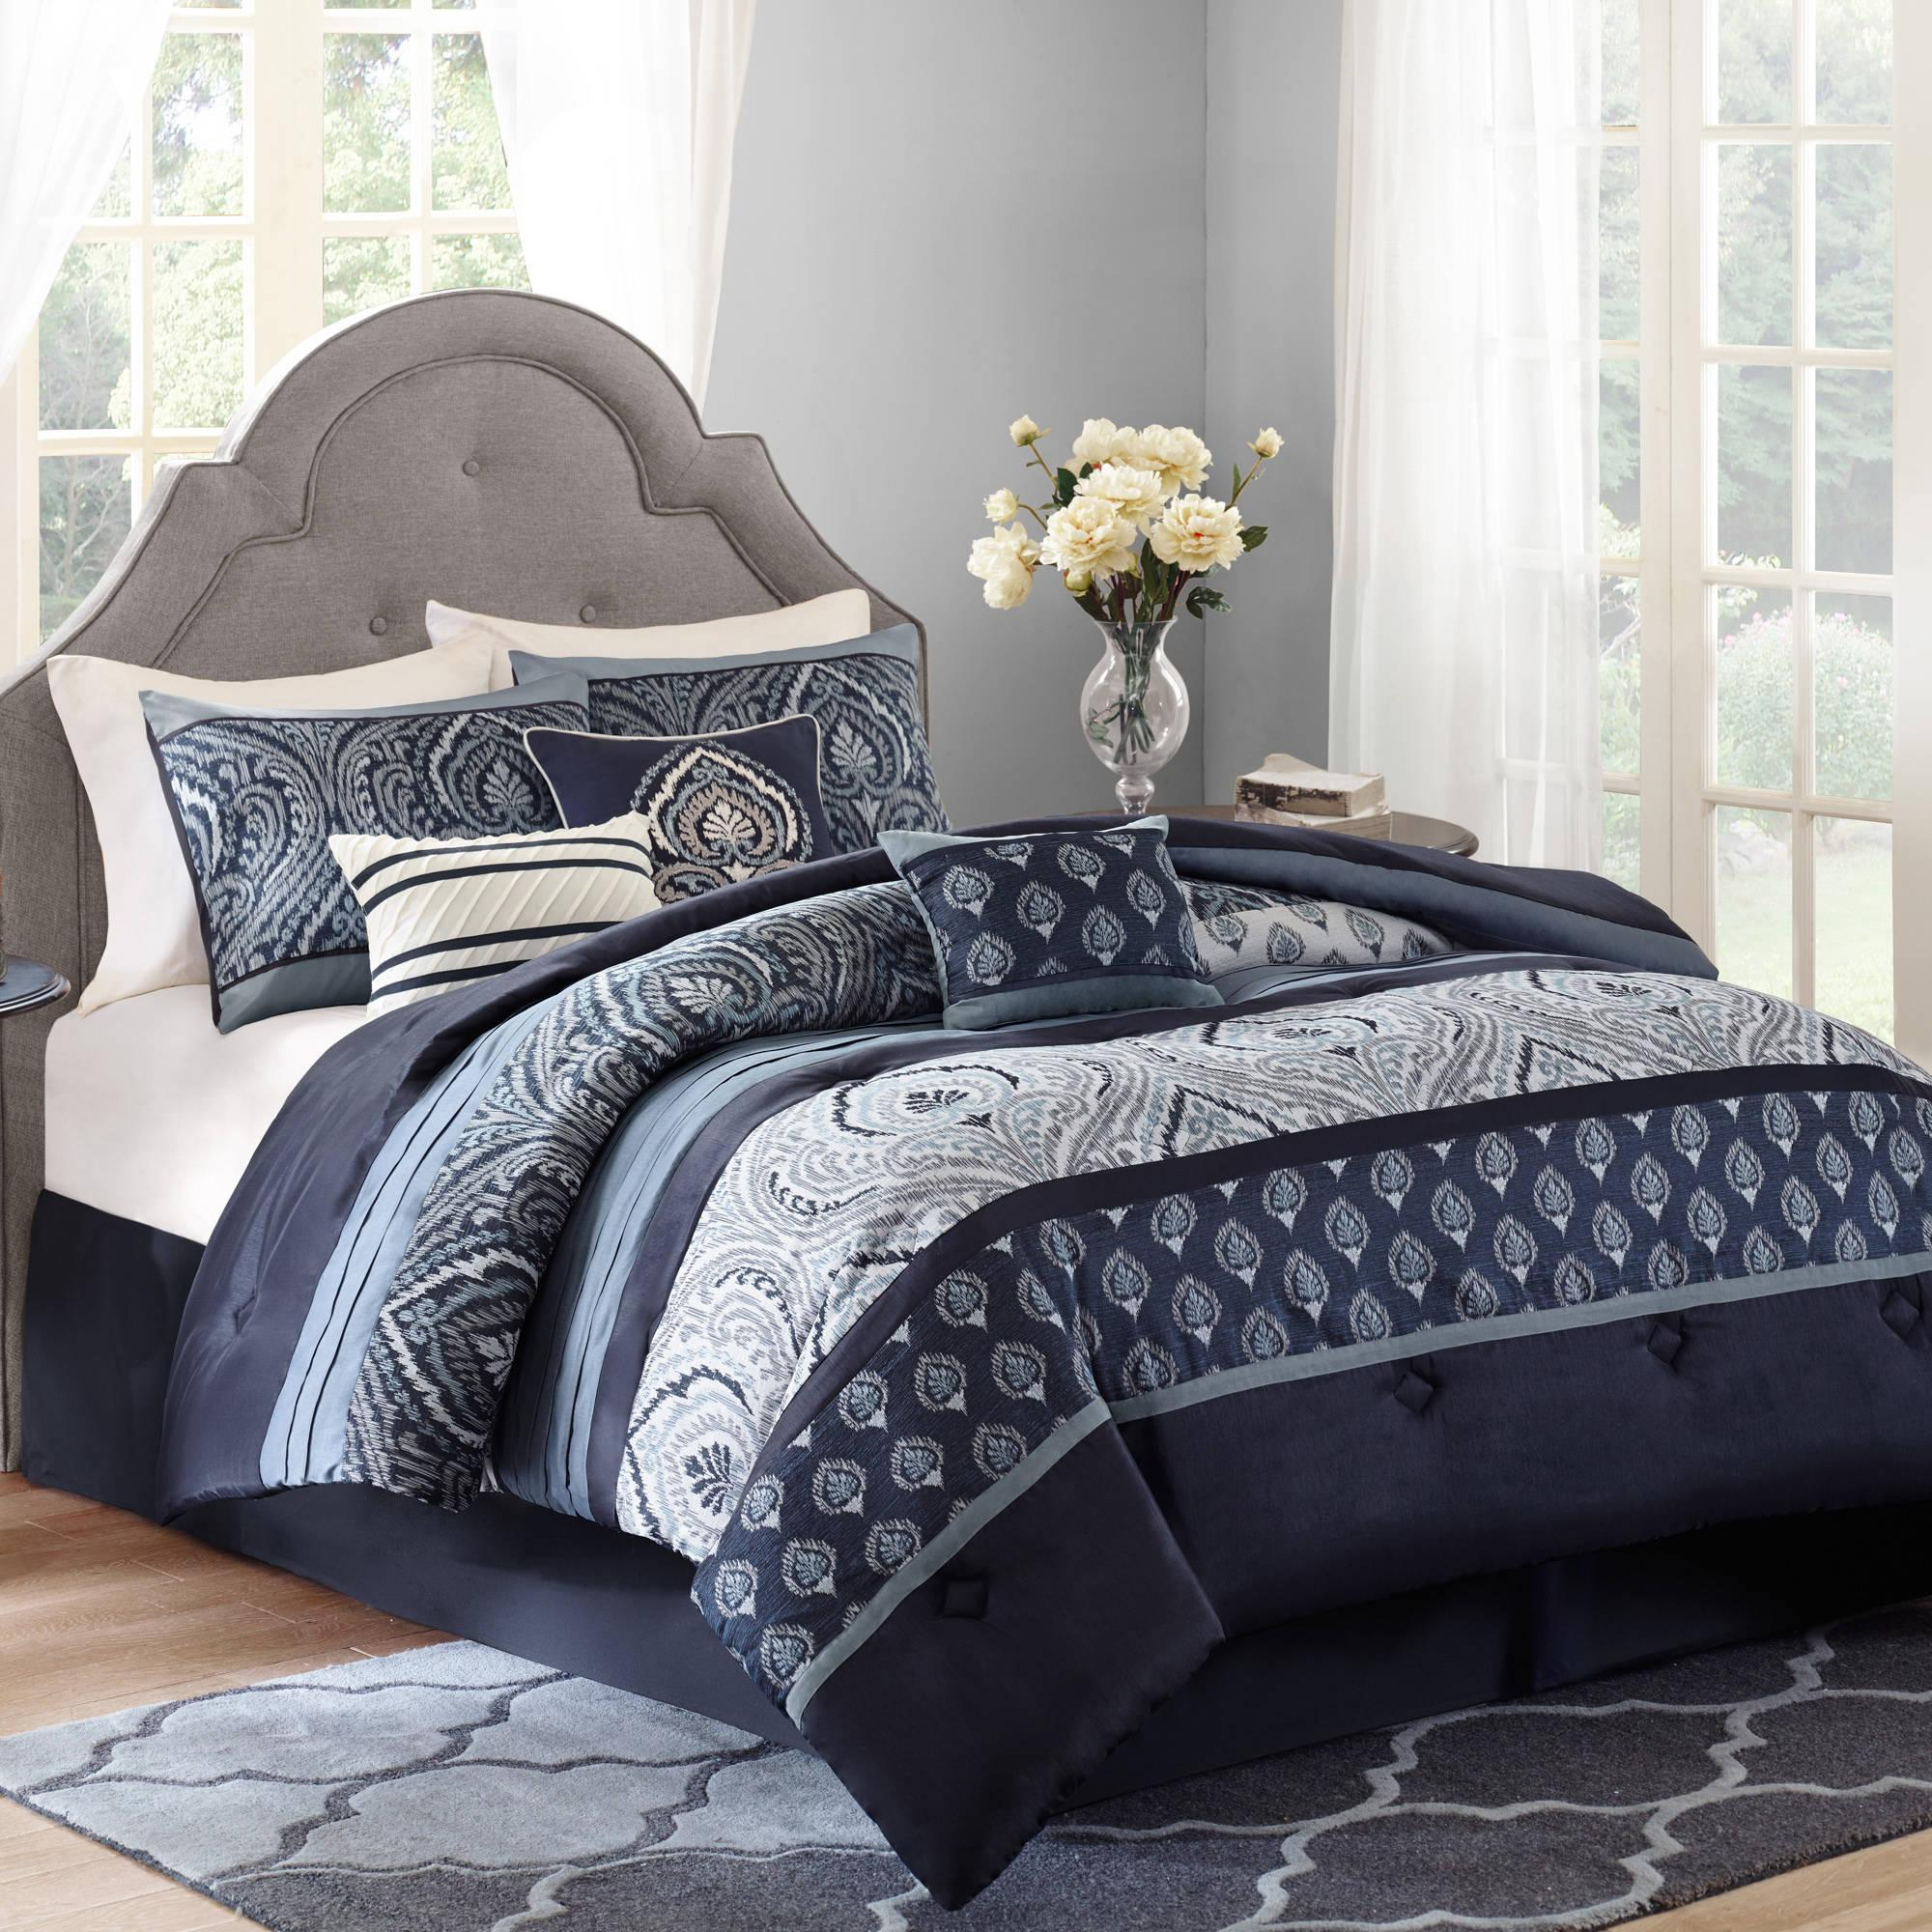 Incroyable Awesome Dark Blue Better Homes And Garden Comforter Sets And Rug With White  Curtains